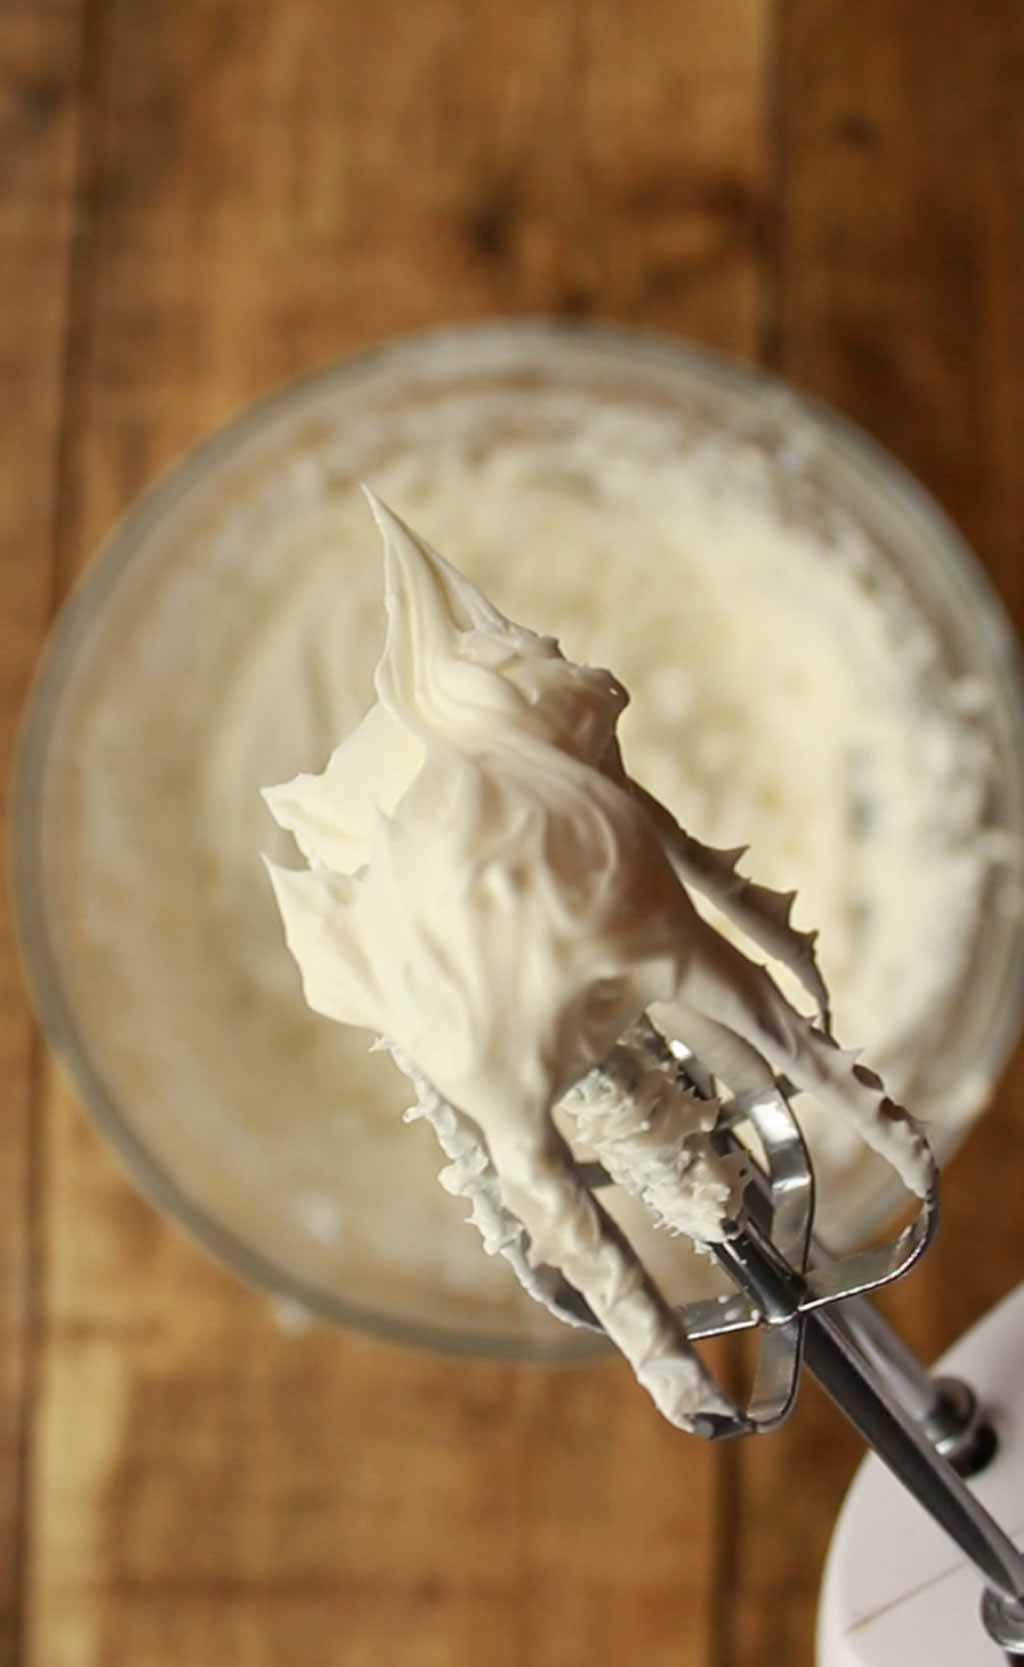 Filling On The End Of A Whisk